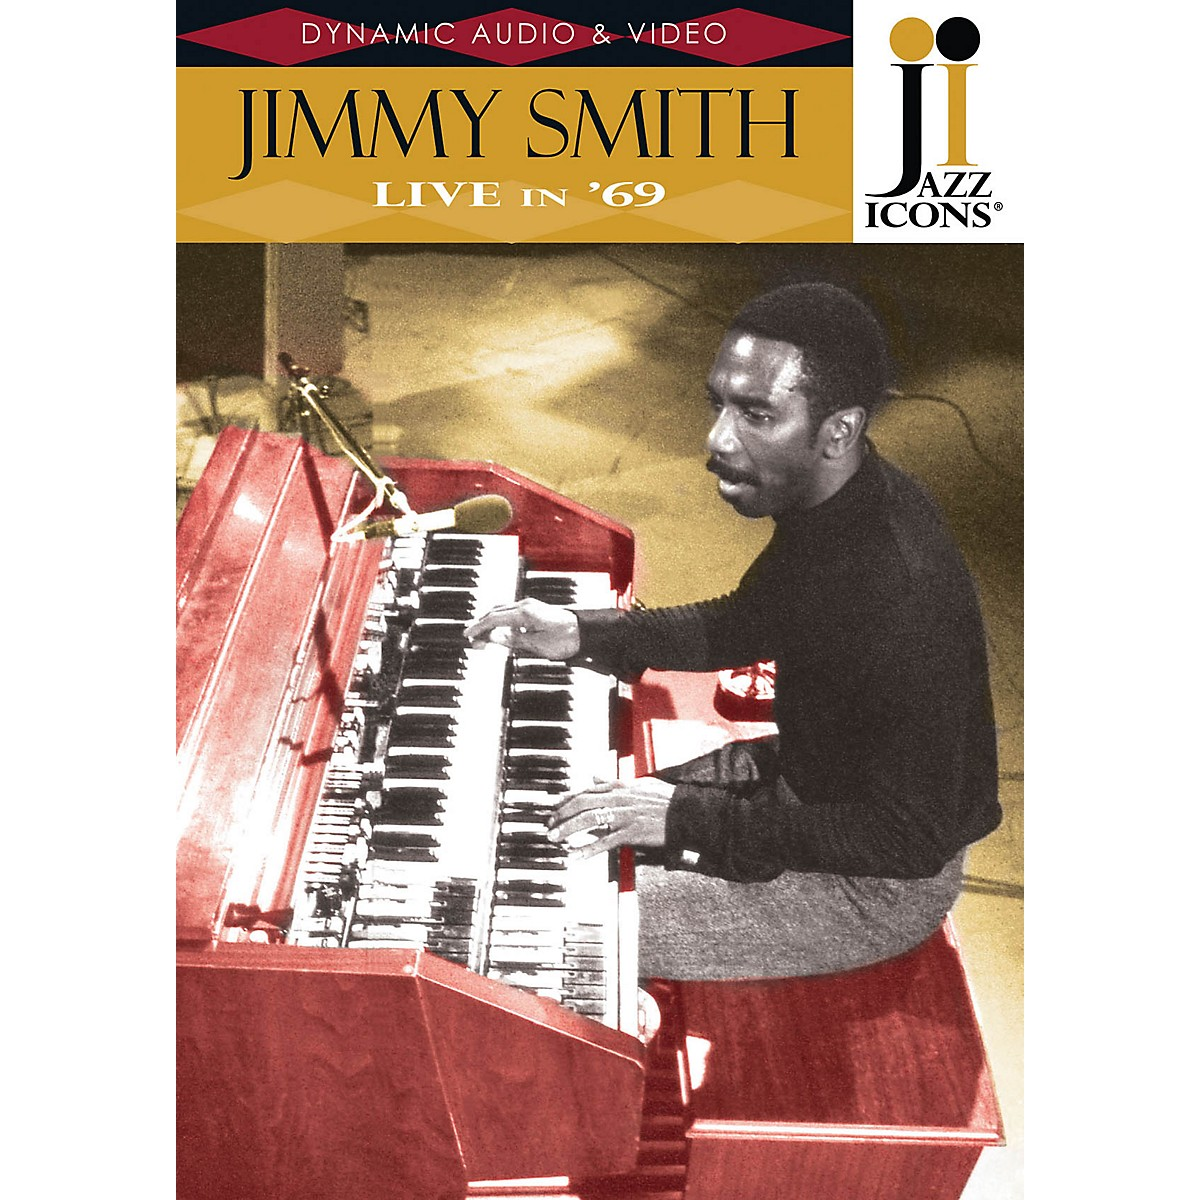 Jazz Icons Jimmy Smith - Live in '69 (Jazz Icons DVD) DVD Series DVD Performed by Jimmy Smith